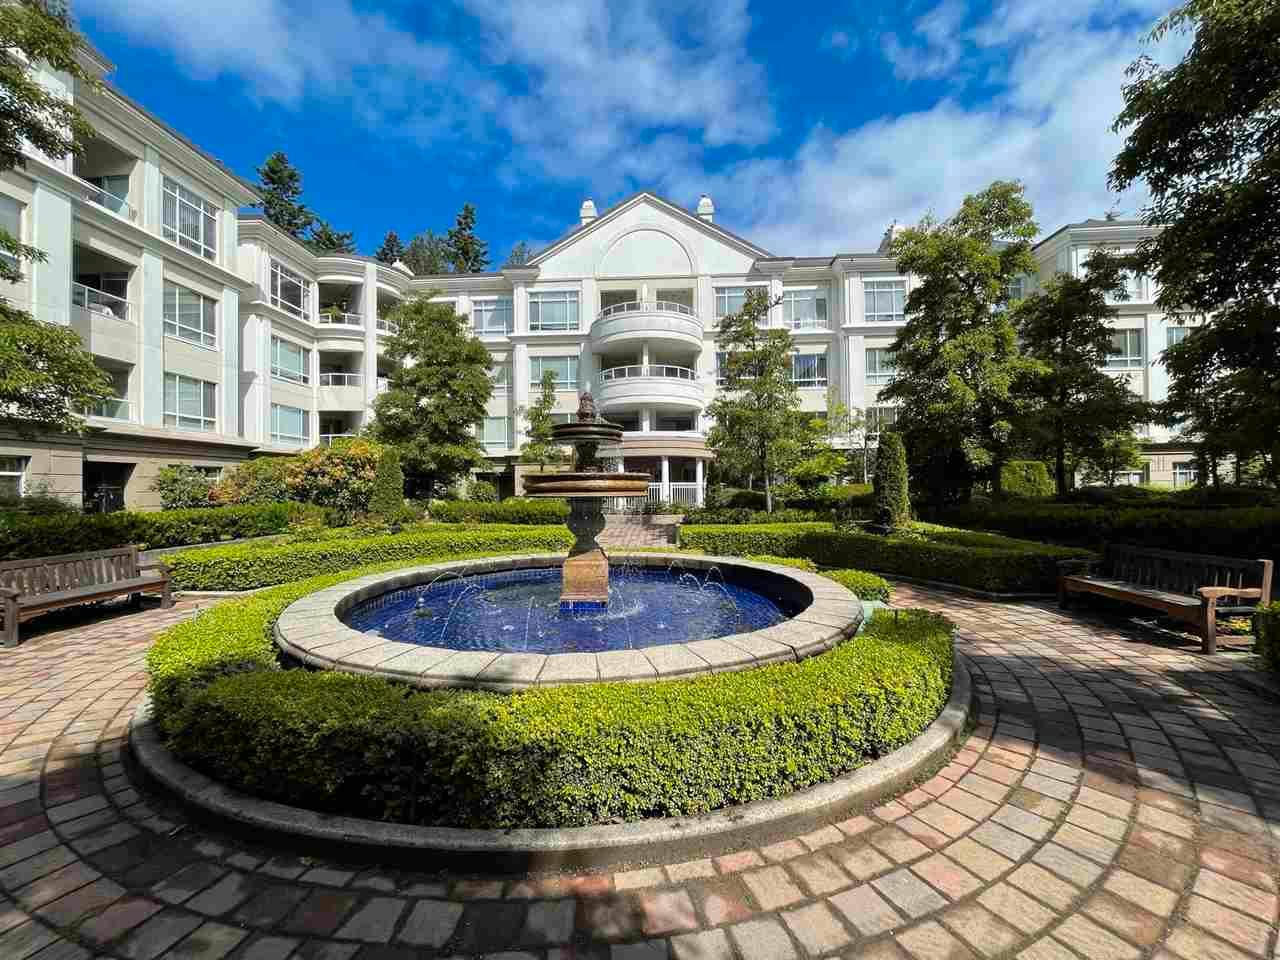 """Main Photo: 104 5735 HAMPTON Place in Vancouver: University VW Condo for sale in """"THE BRISTOL"""" (Vancouver West)  : MLS®# R2590076"""